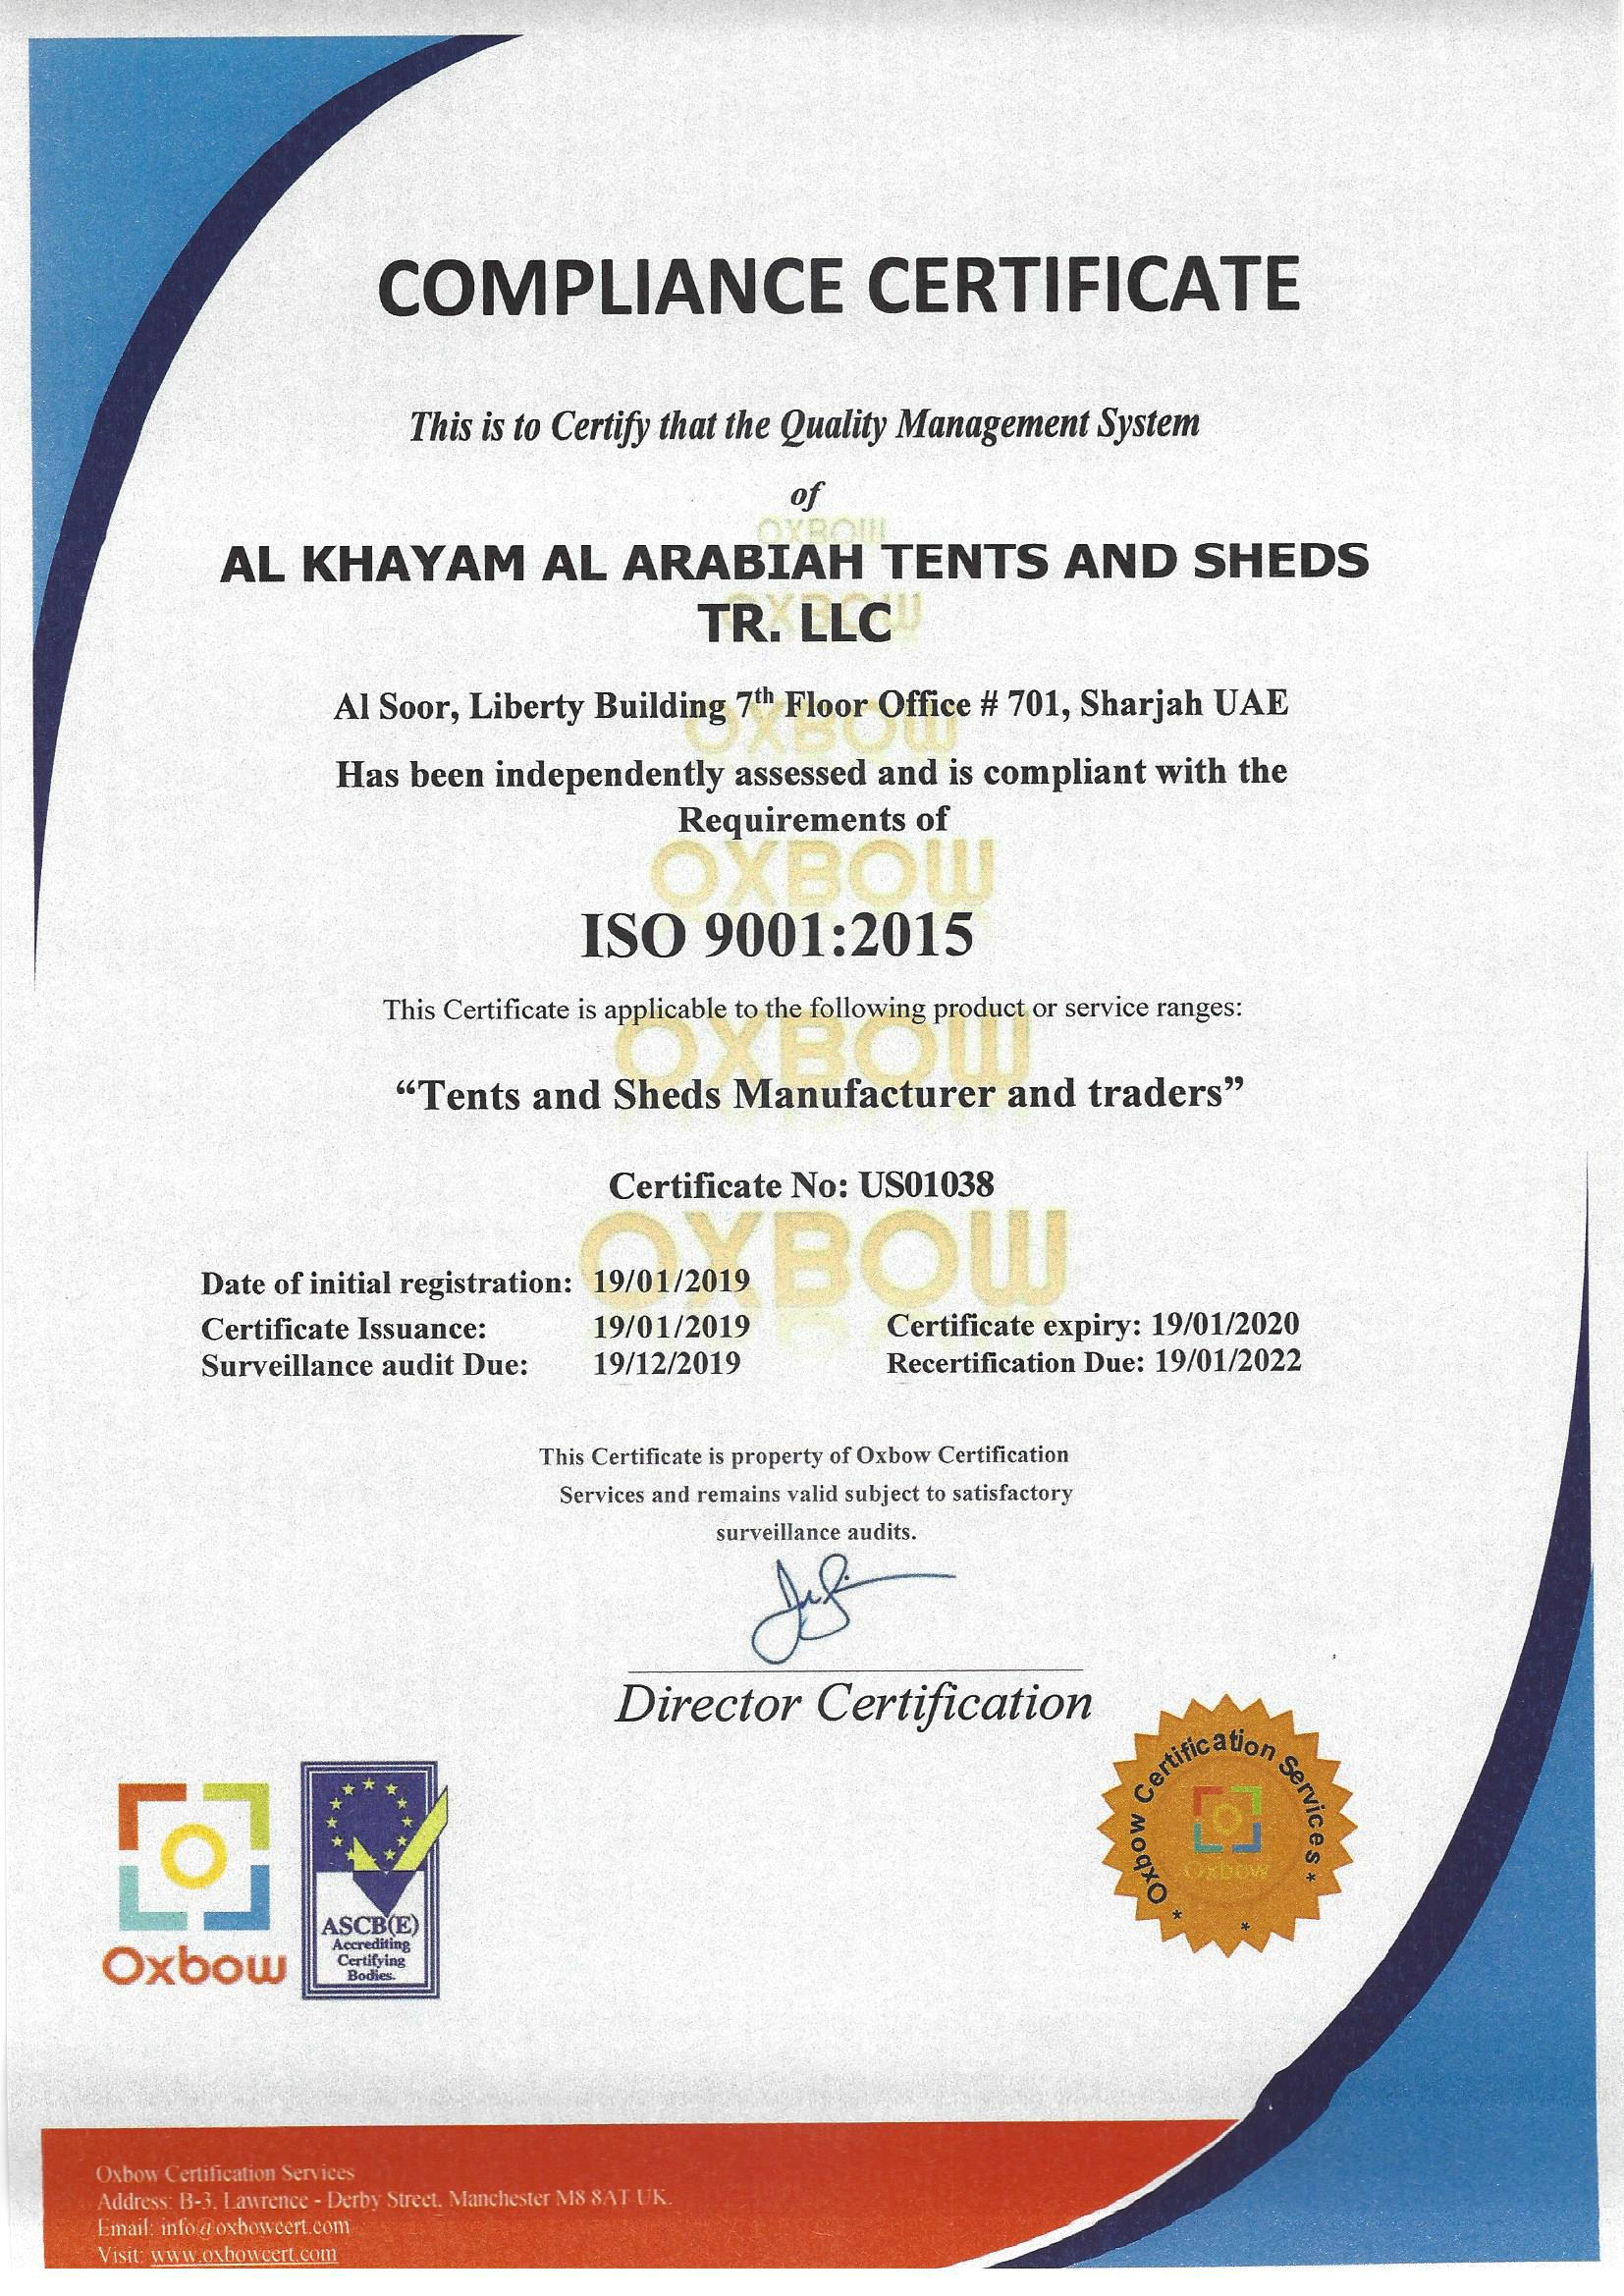 certified quality management company for tents and sheds manufacturer and trading